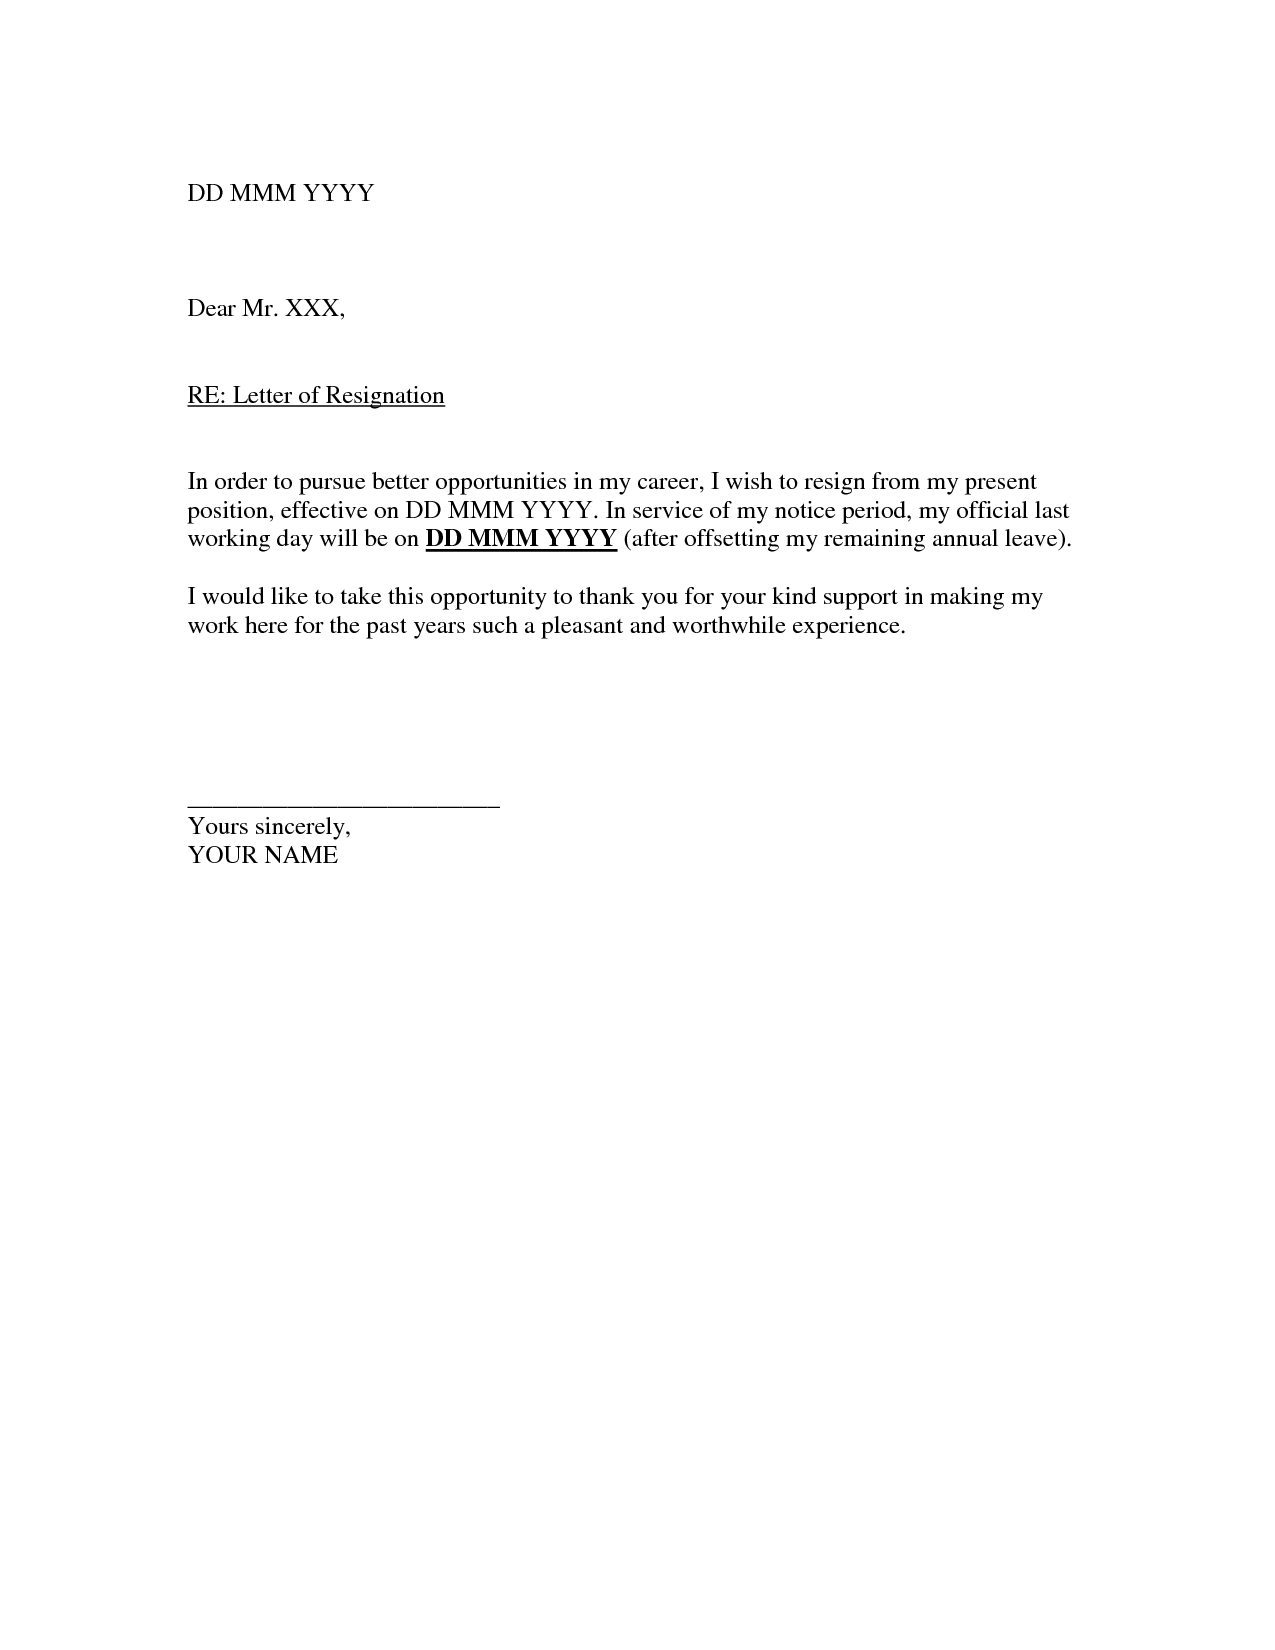 Resignation Letter Outline Grude Interpretomics Co